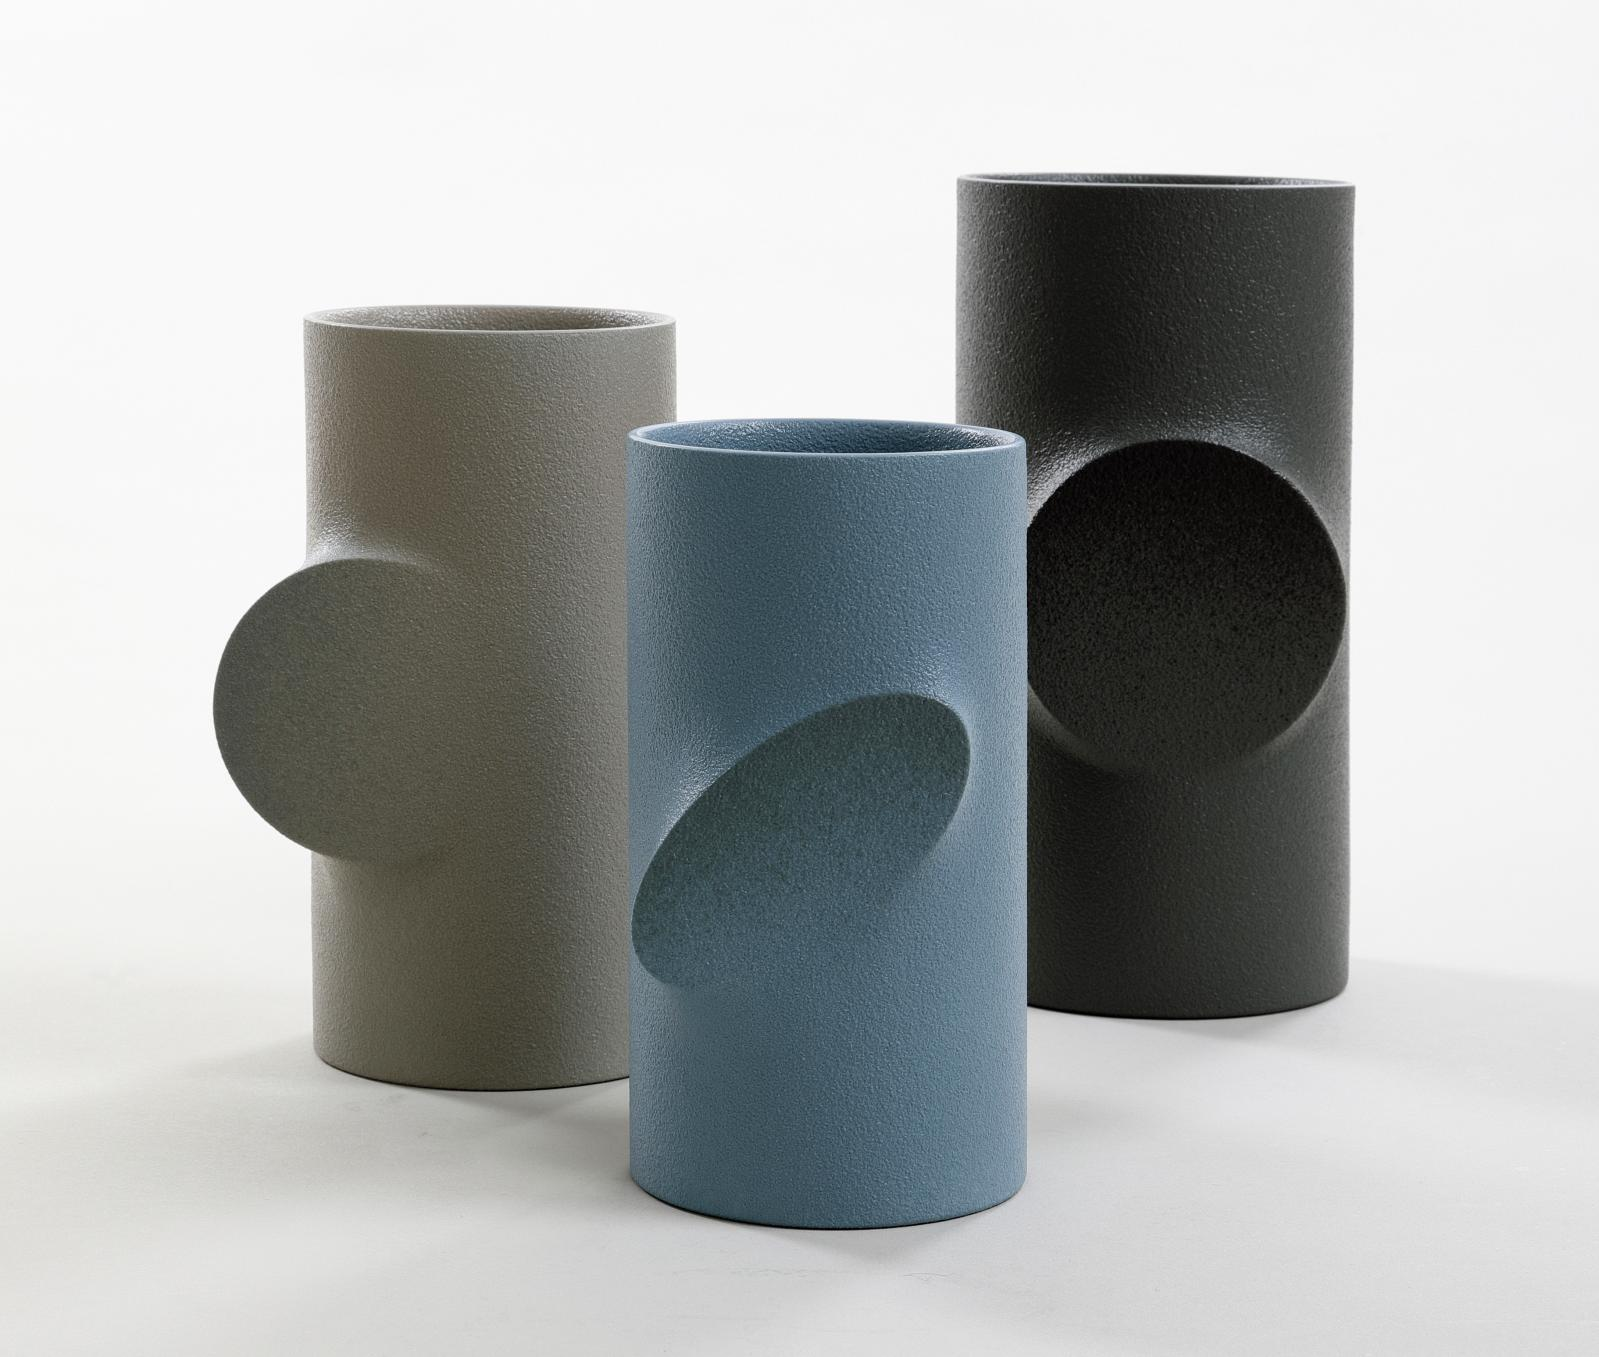 Jeongwon Lee, vases, 2019. Courtesy of Korea Ceramic FoUndation